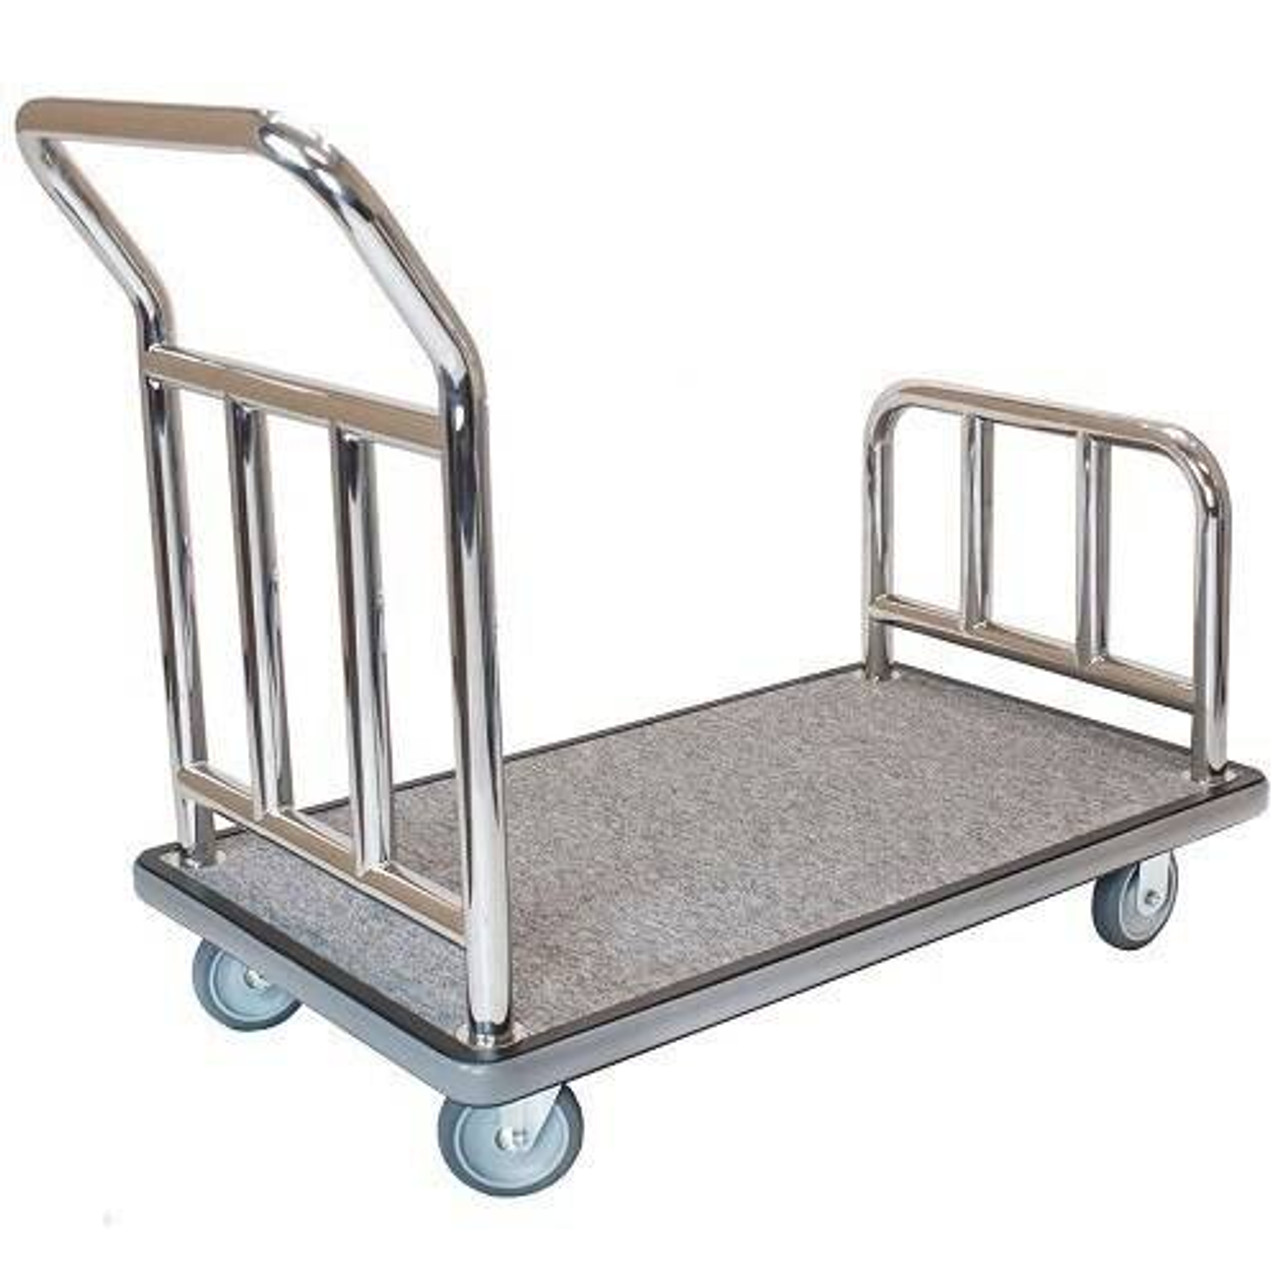 HOSPITALITY 1 SOURCE HOSPITALITY 1 SOURCE or STAINLESS STEEL UTILITY CART or 5 FULLY PNEUMATIC WHEELS